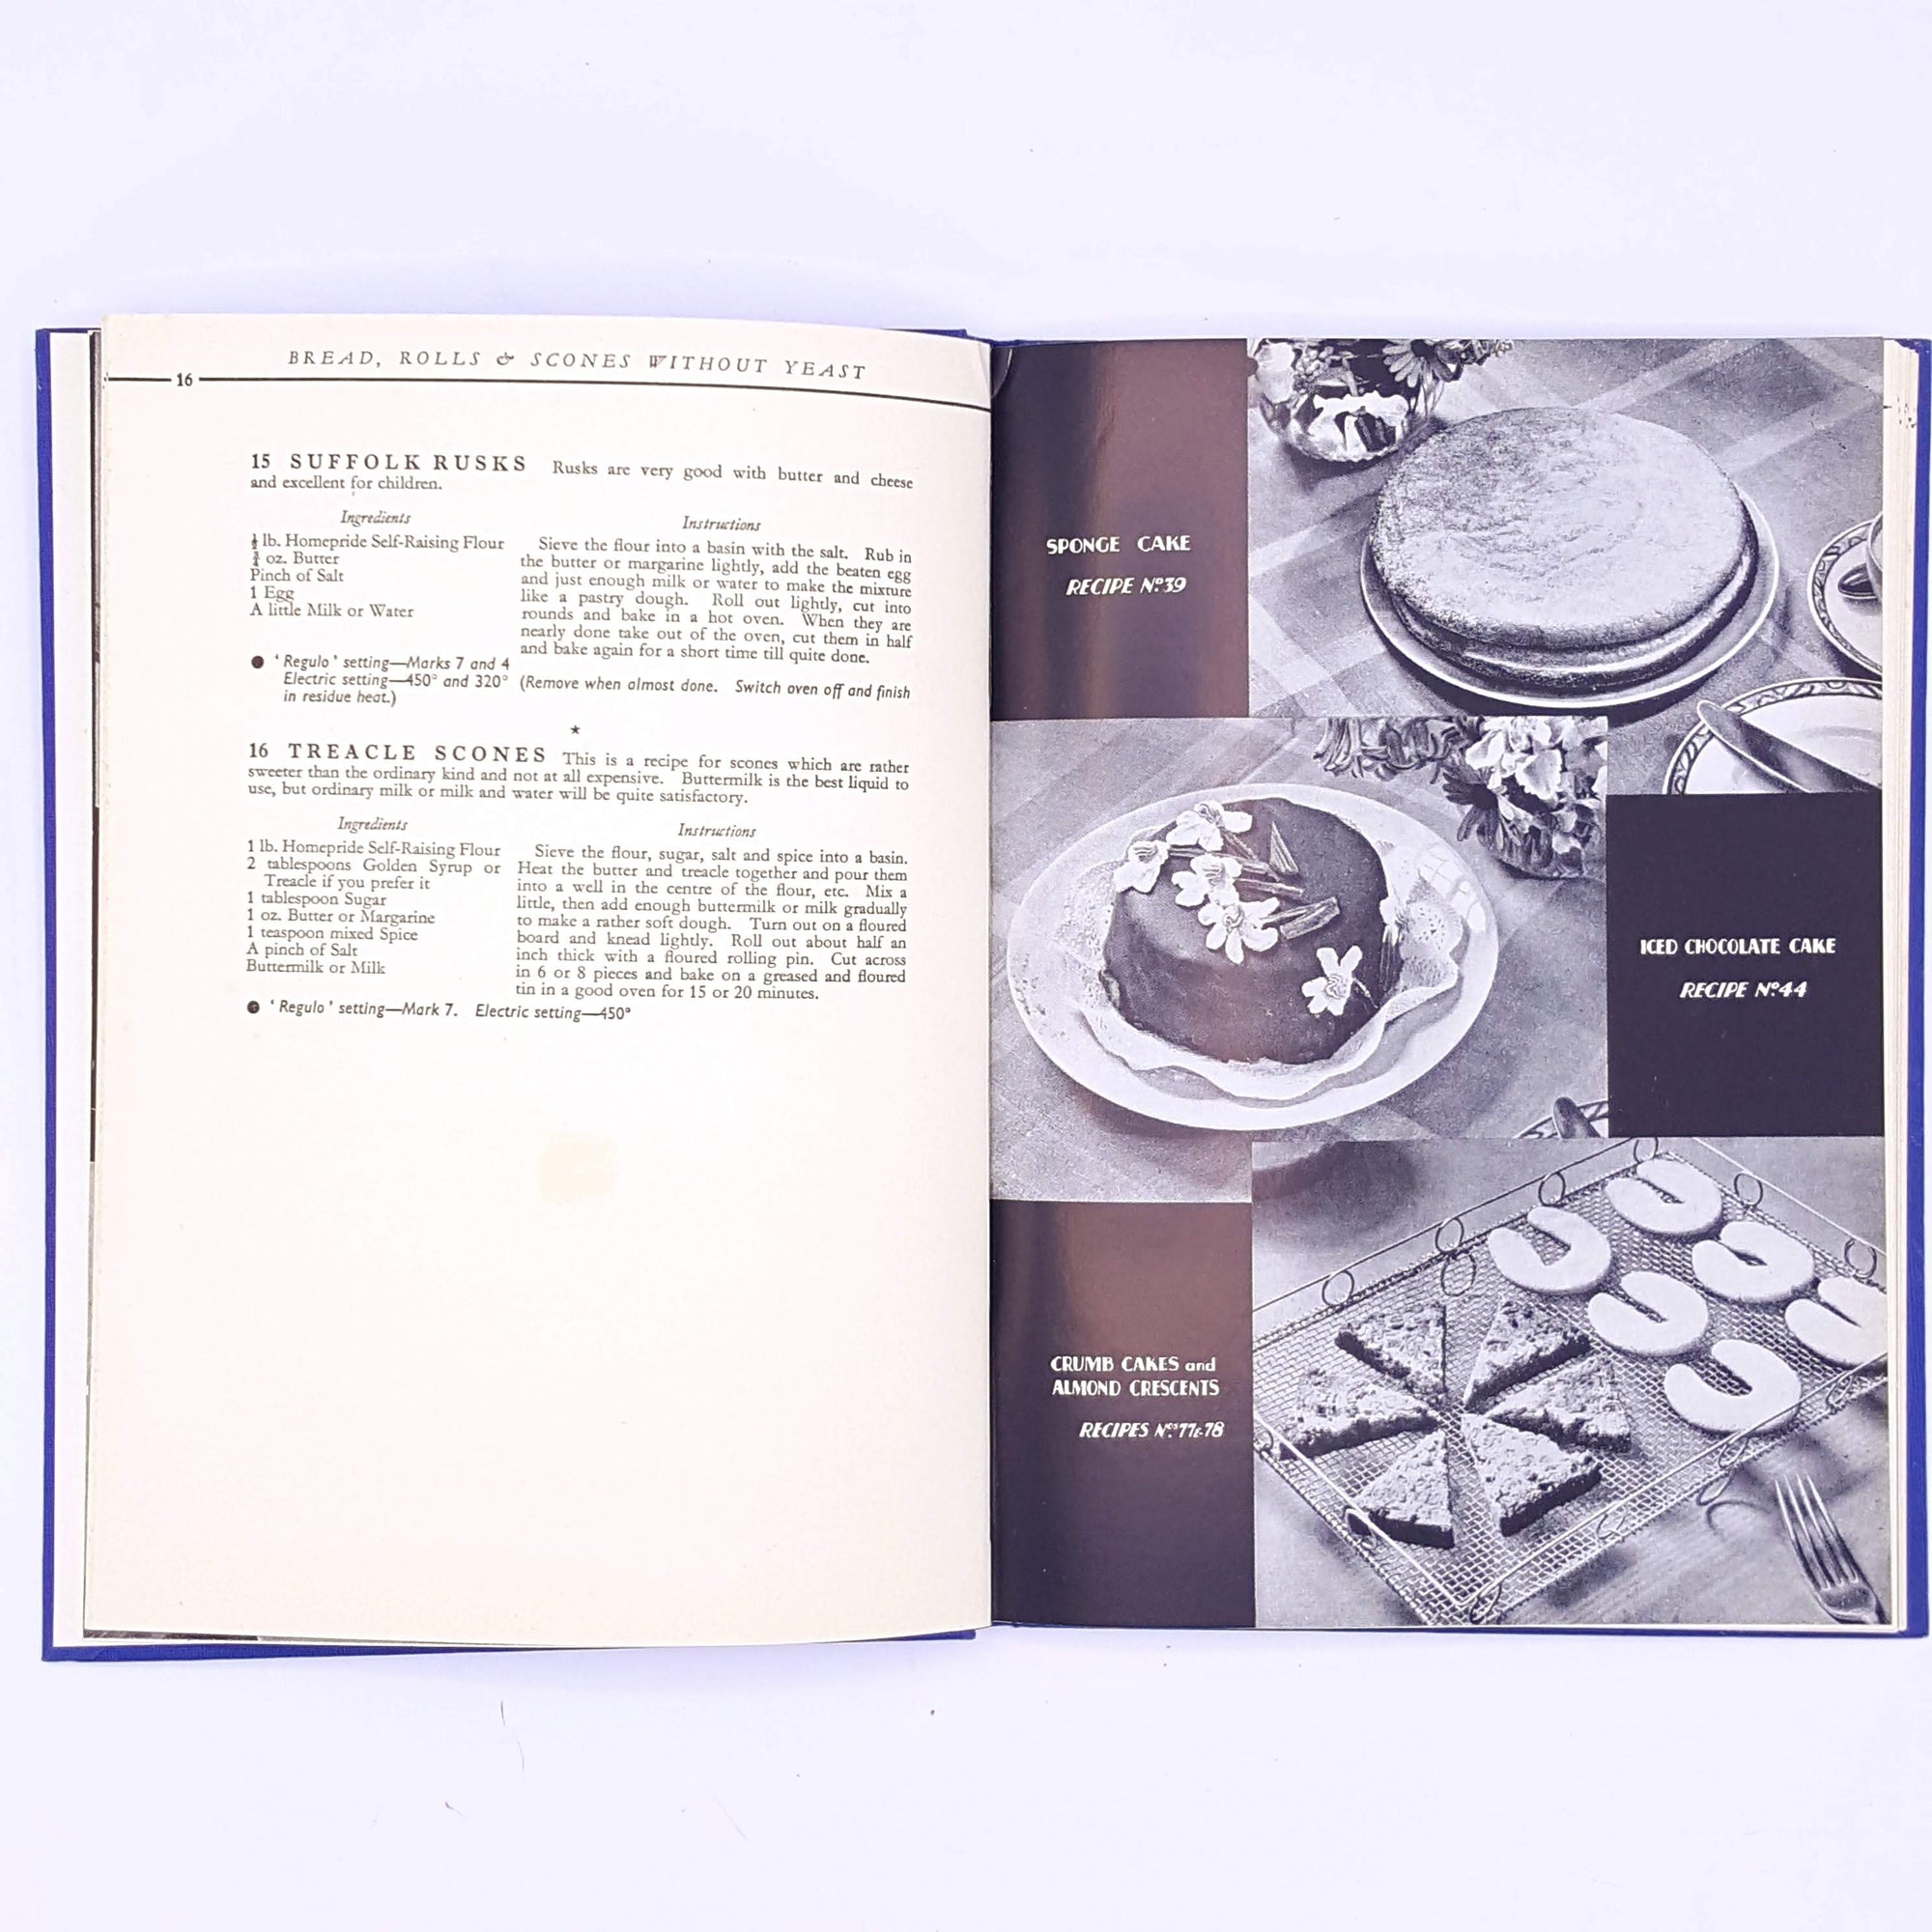 cooking-Homepride-Cookery-Book-Catherine-Ives-for foodies-antique-recipes-thrift-old-classic-baking-christmas gifts-books-patterned-cookbooks-vintage-decorative-country-house-library-